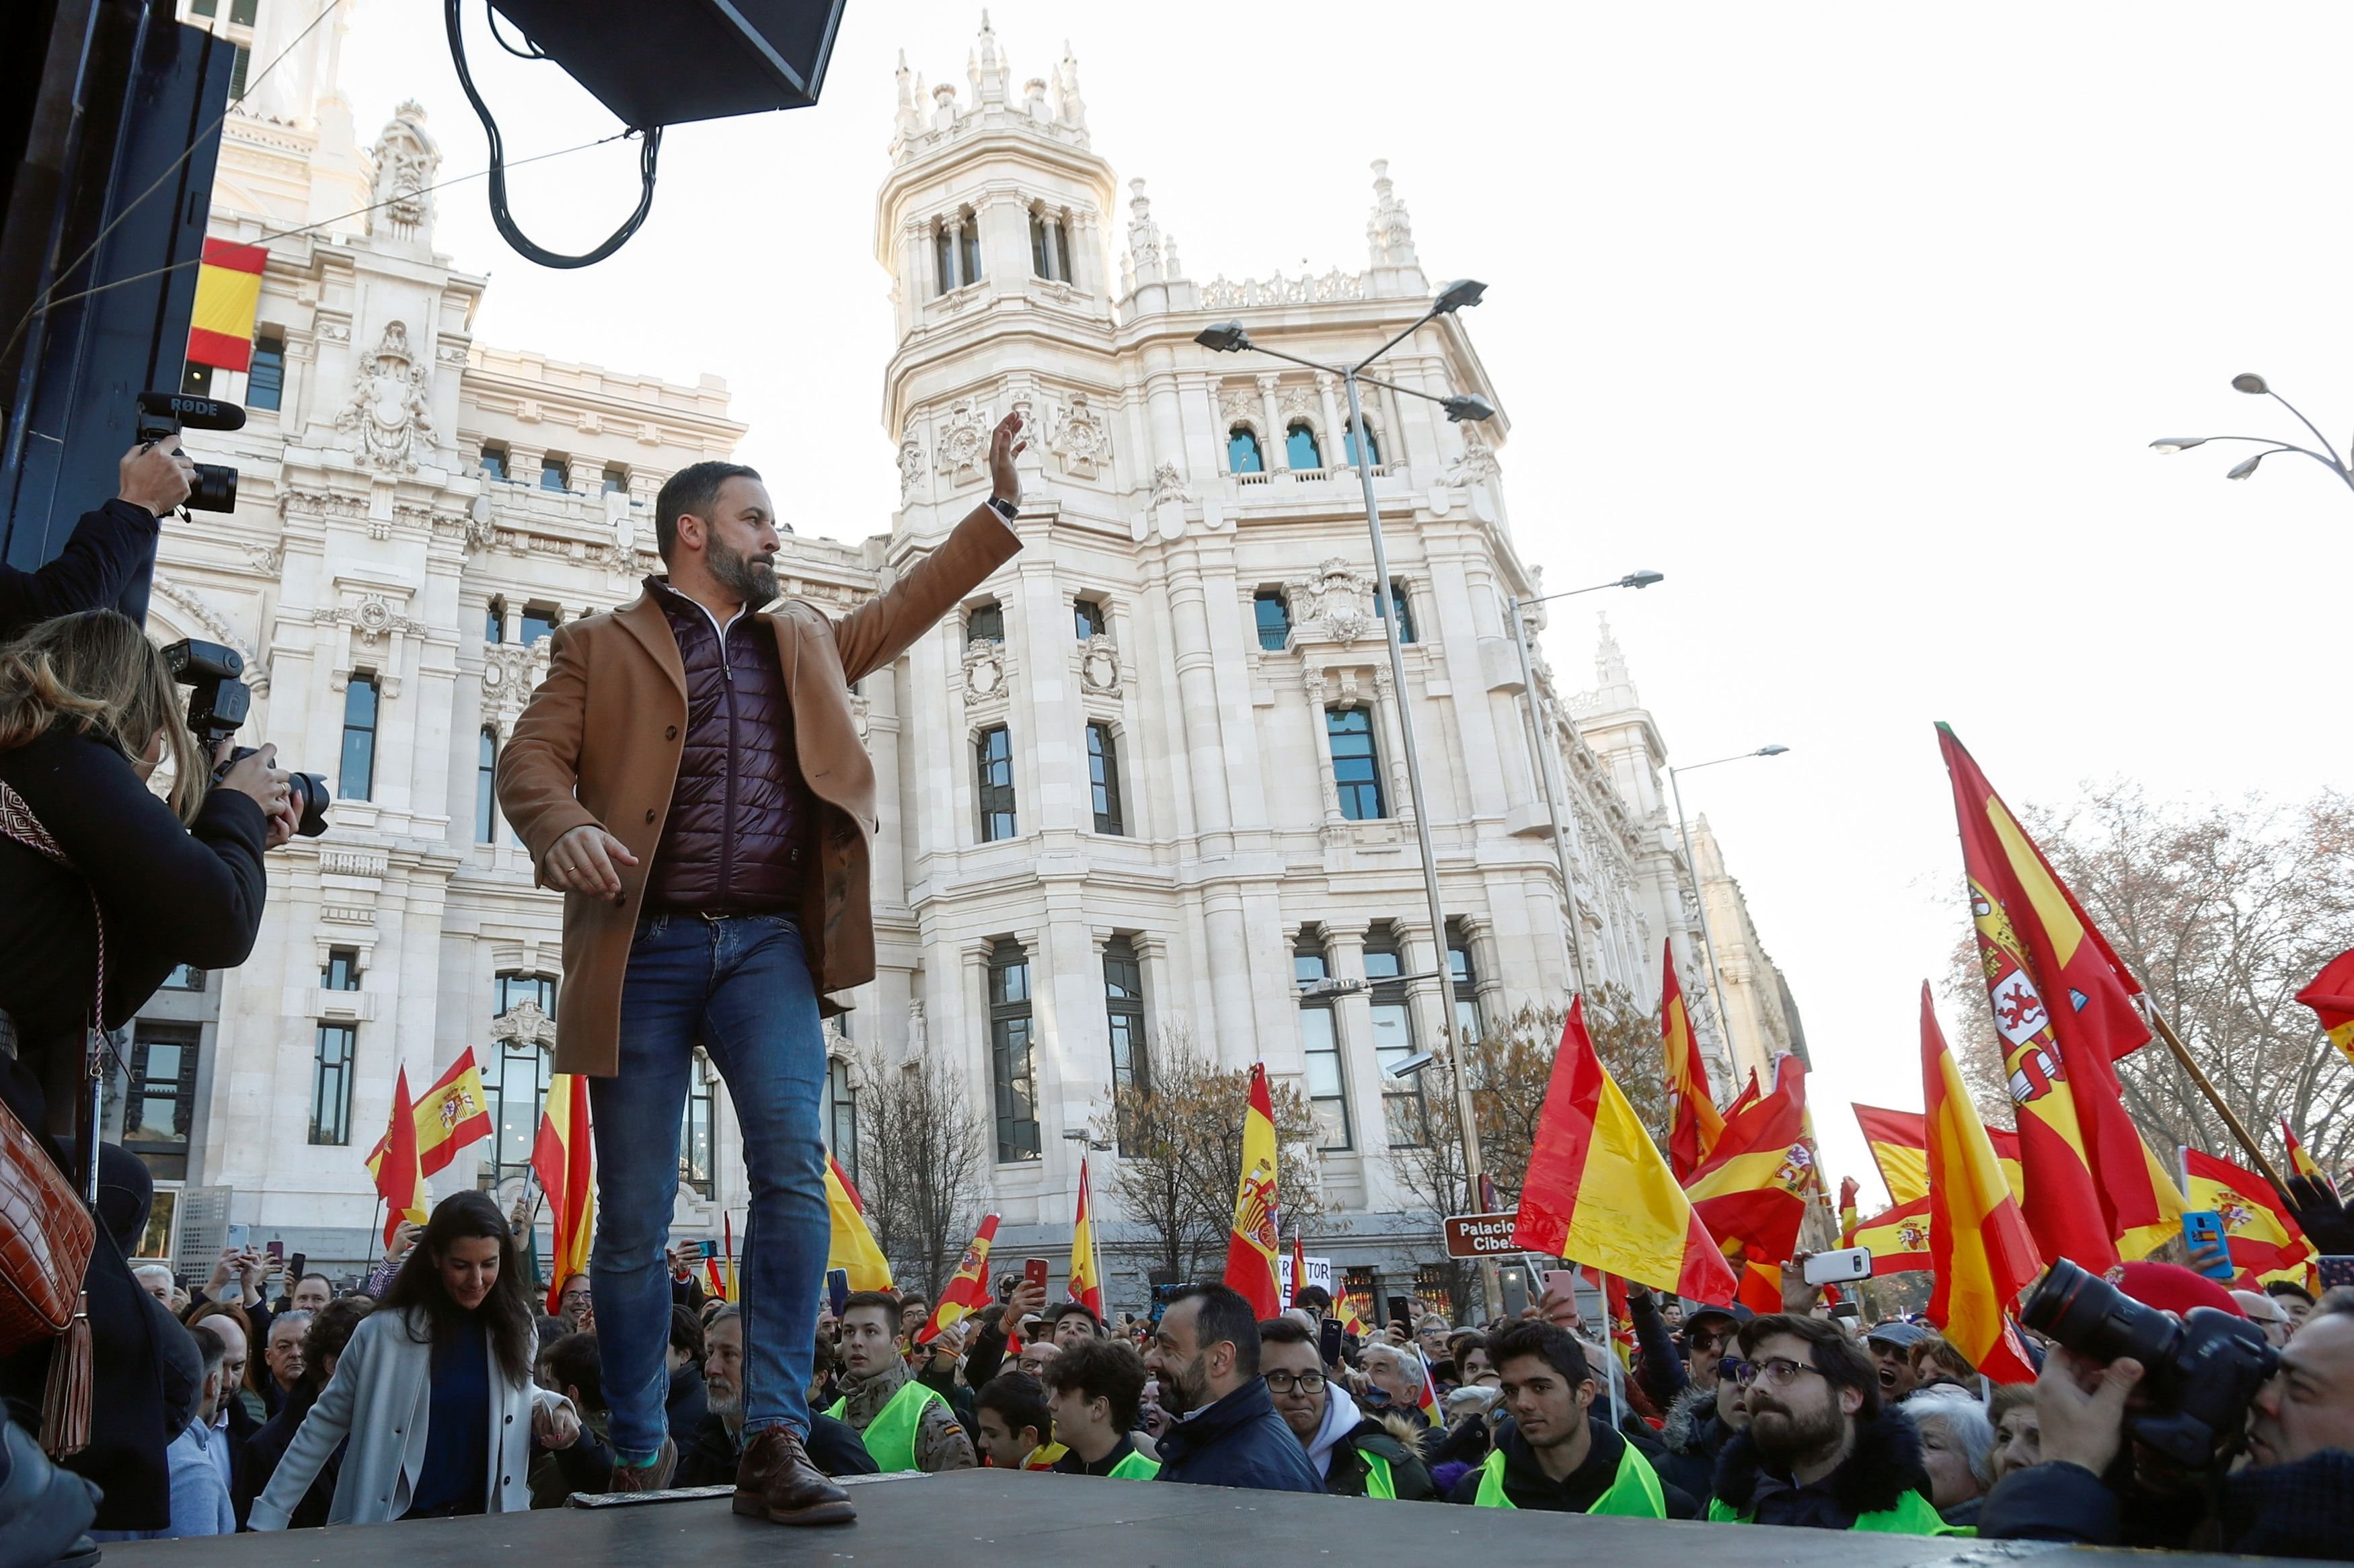 Protest called by far-right party VOX against the new coalition government led by Spain's PM Sanchez in Madrid